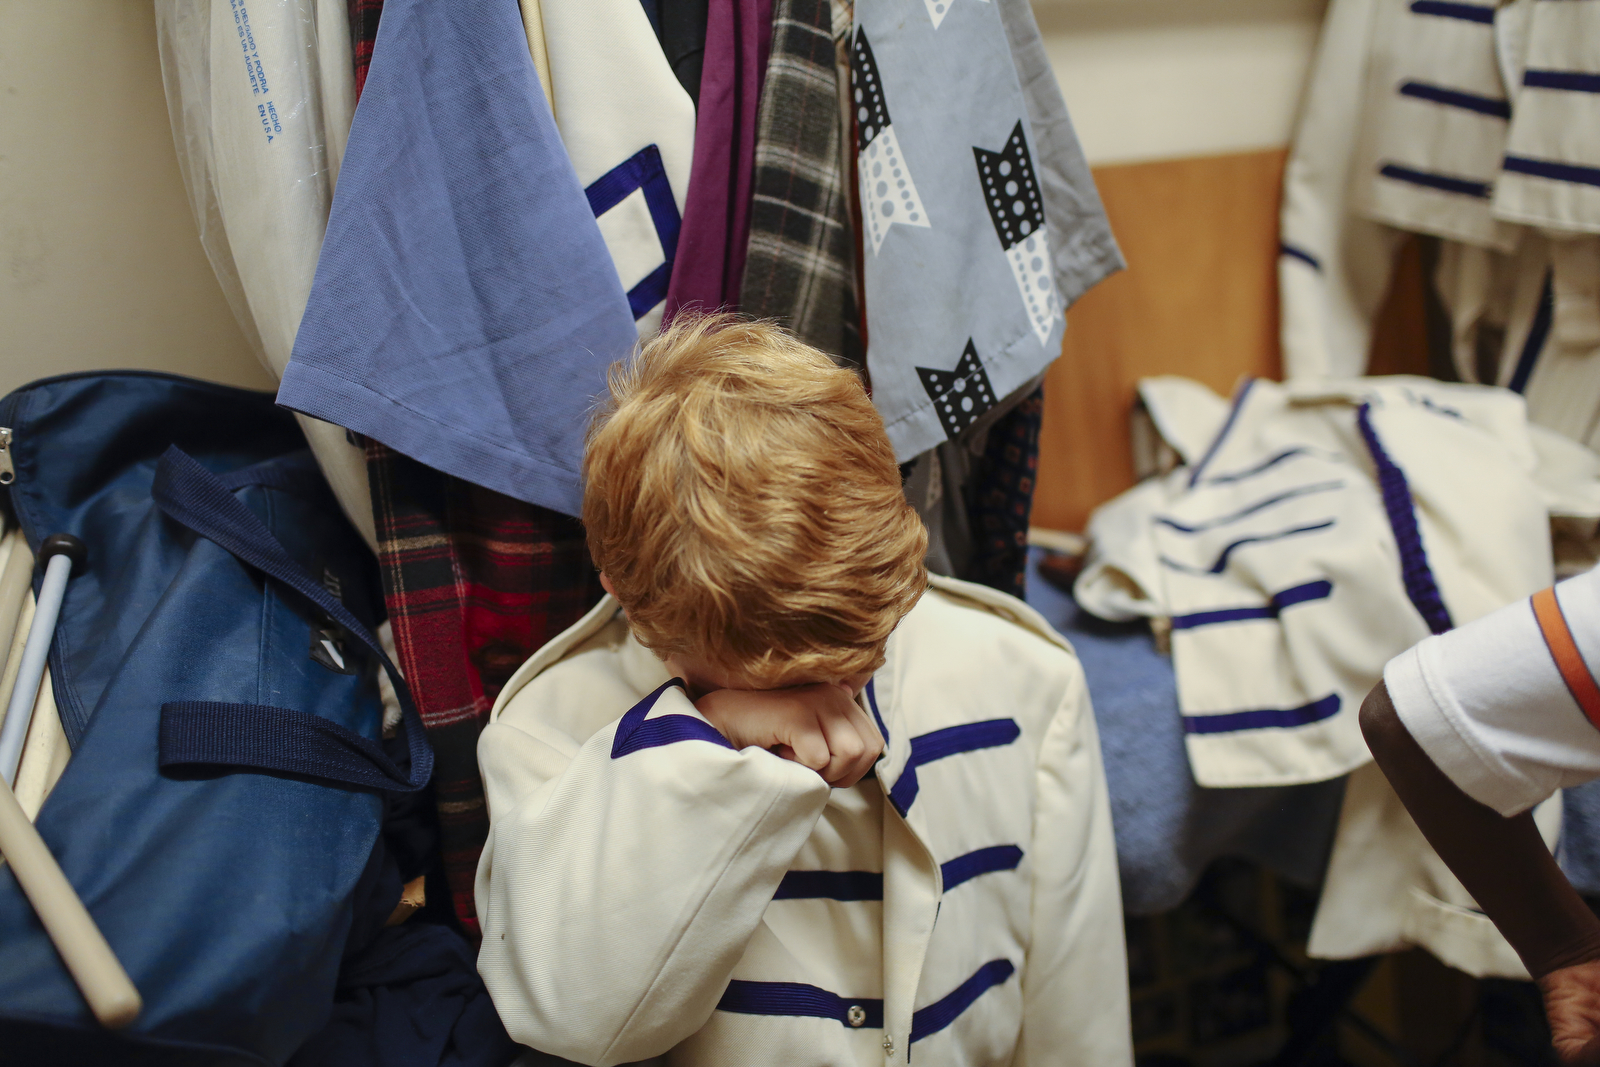 Axel Littlepage-Holmes wipes his eyes while trying on uniforms for the Columbia City-Wide drum line. Axel is the smallest and youngest on the drum line, and Ward didn't have pants that matched the uniform coat.